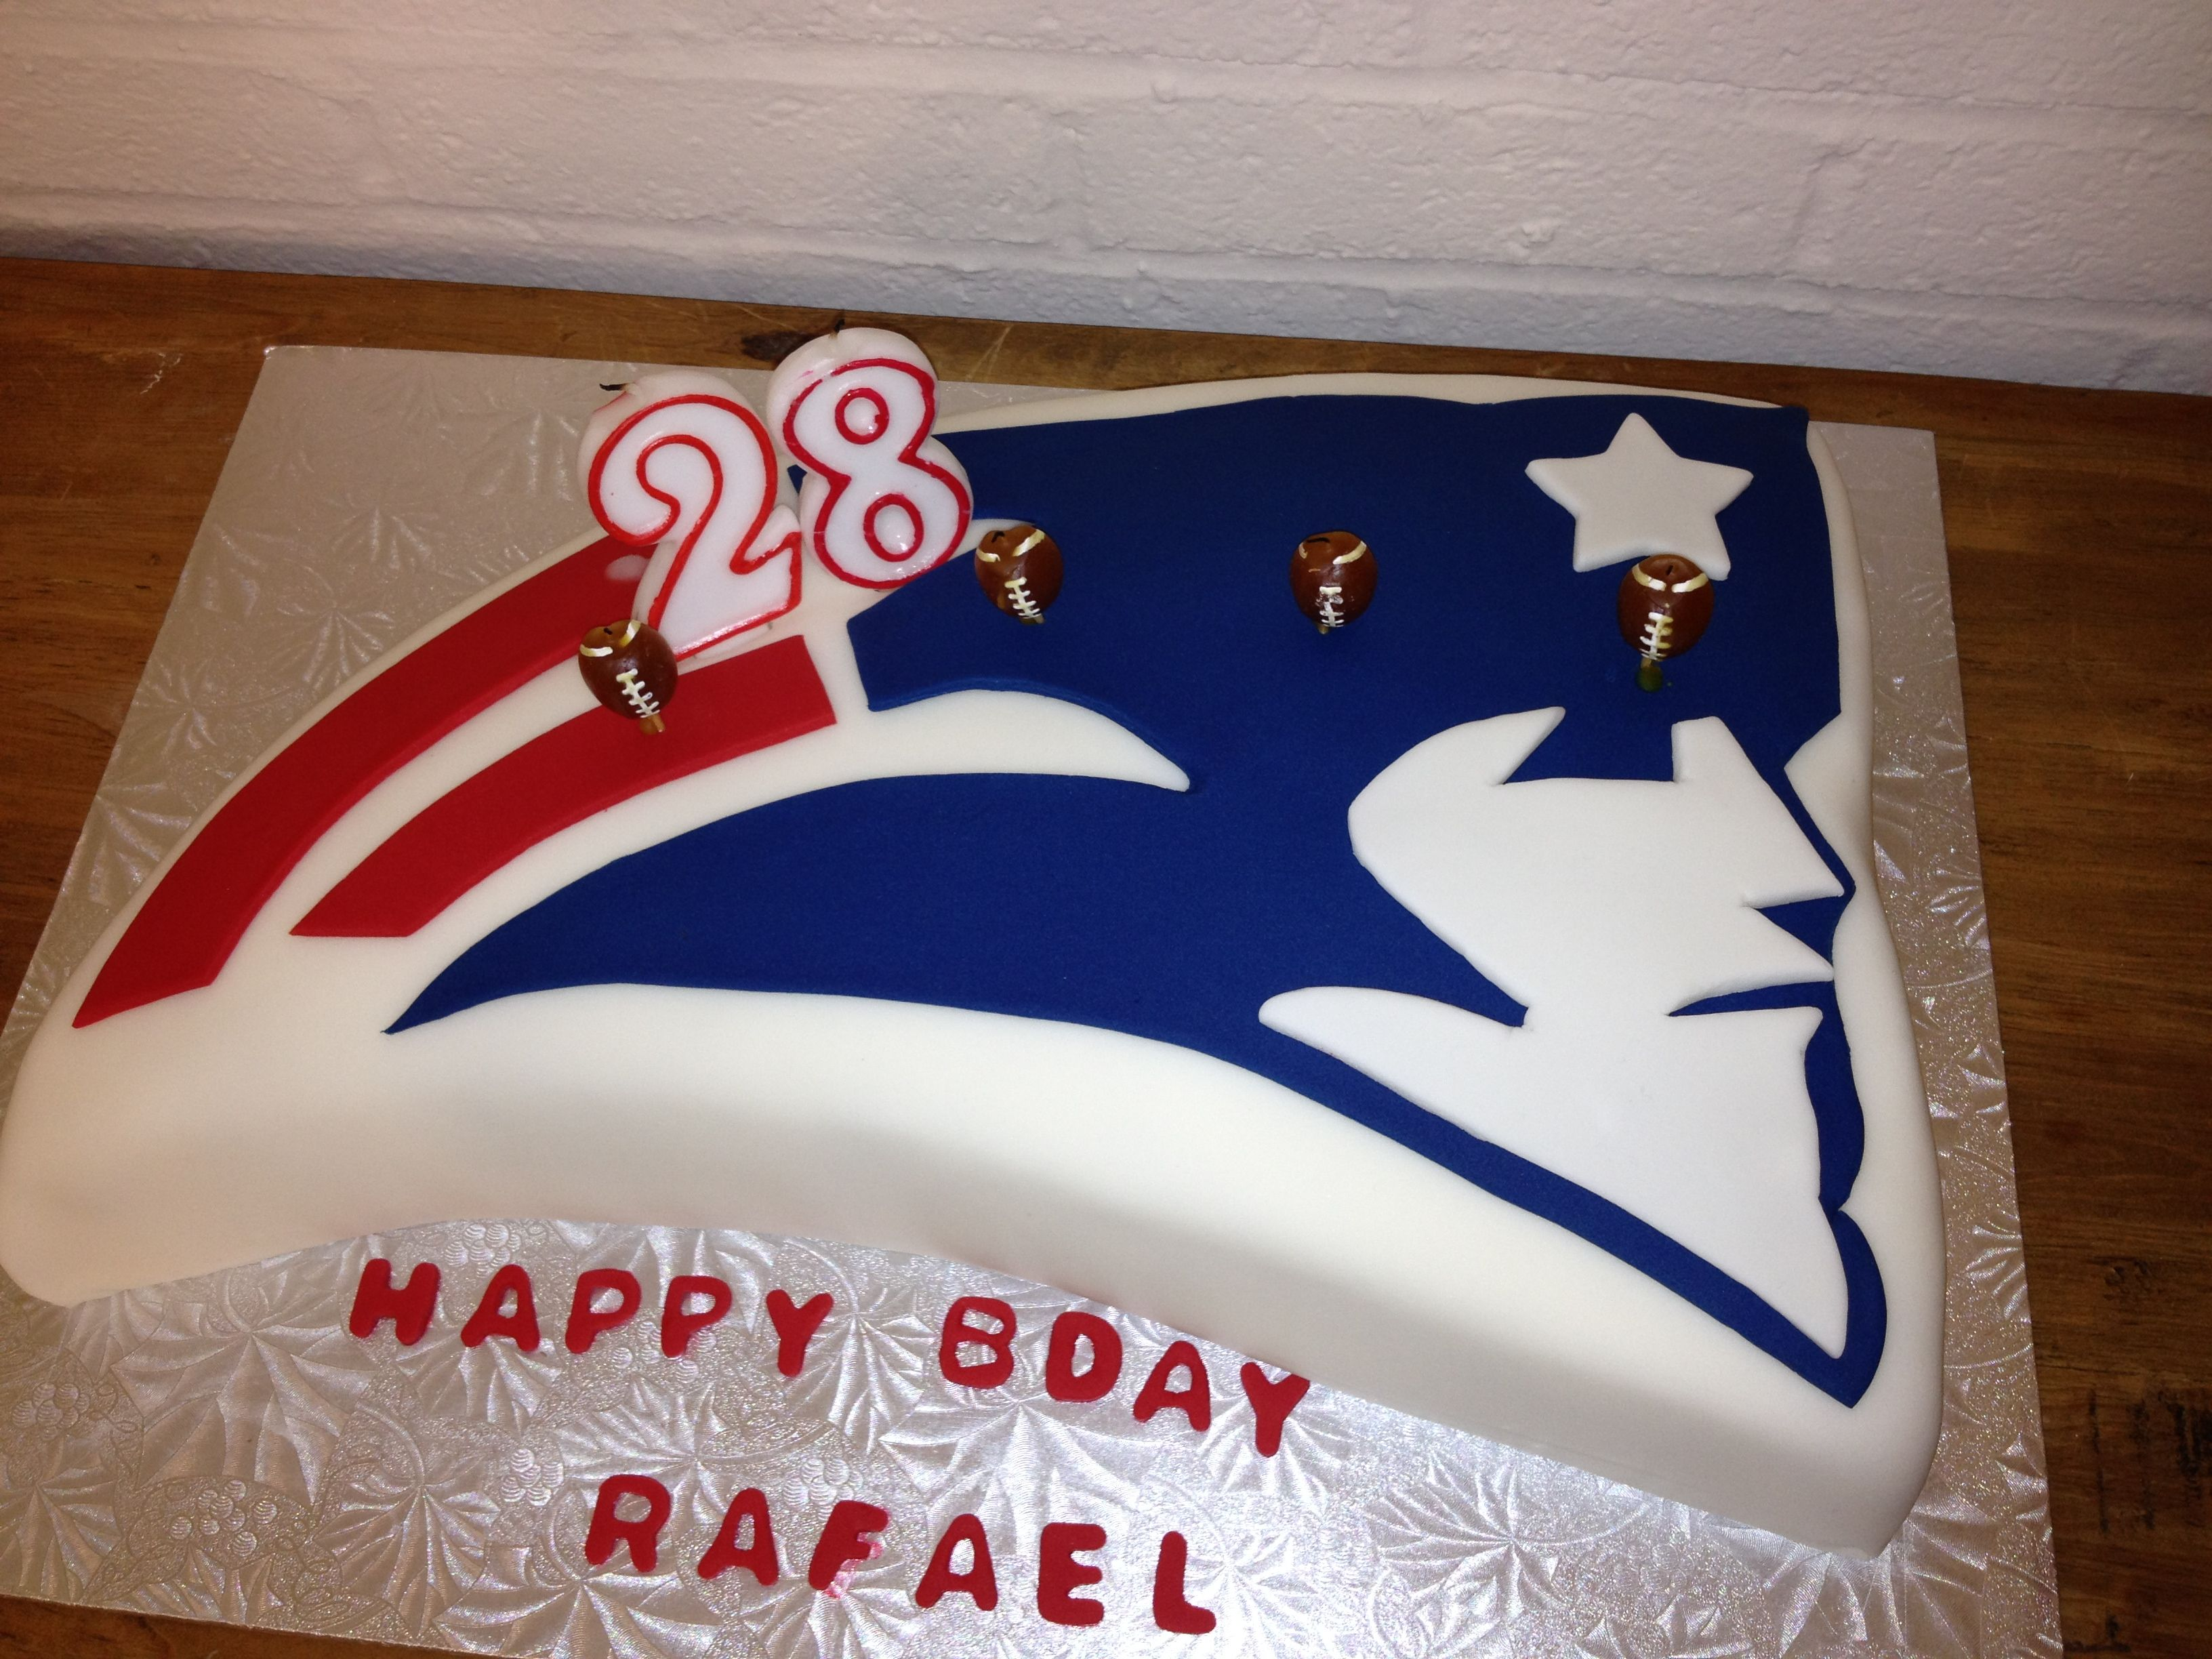 Everyone Needs A Pats Bday Cake Patriotic Baking Pinterest